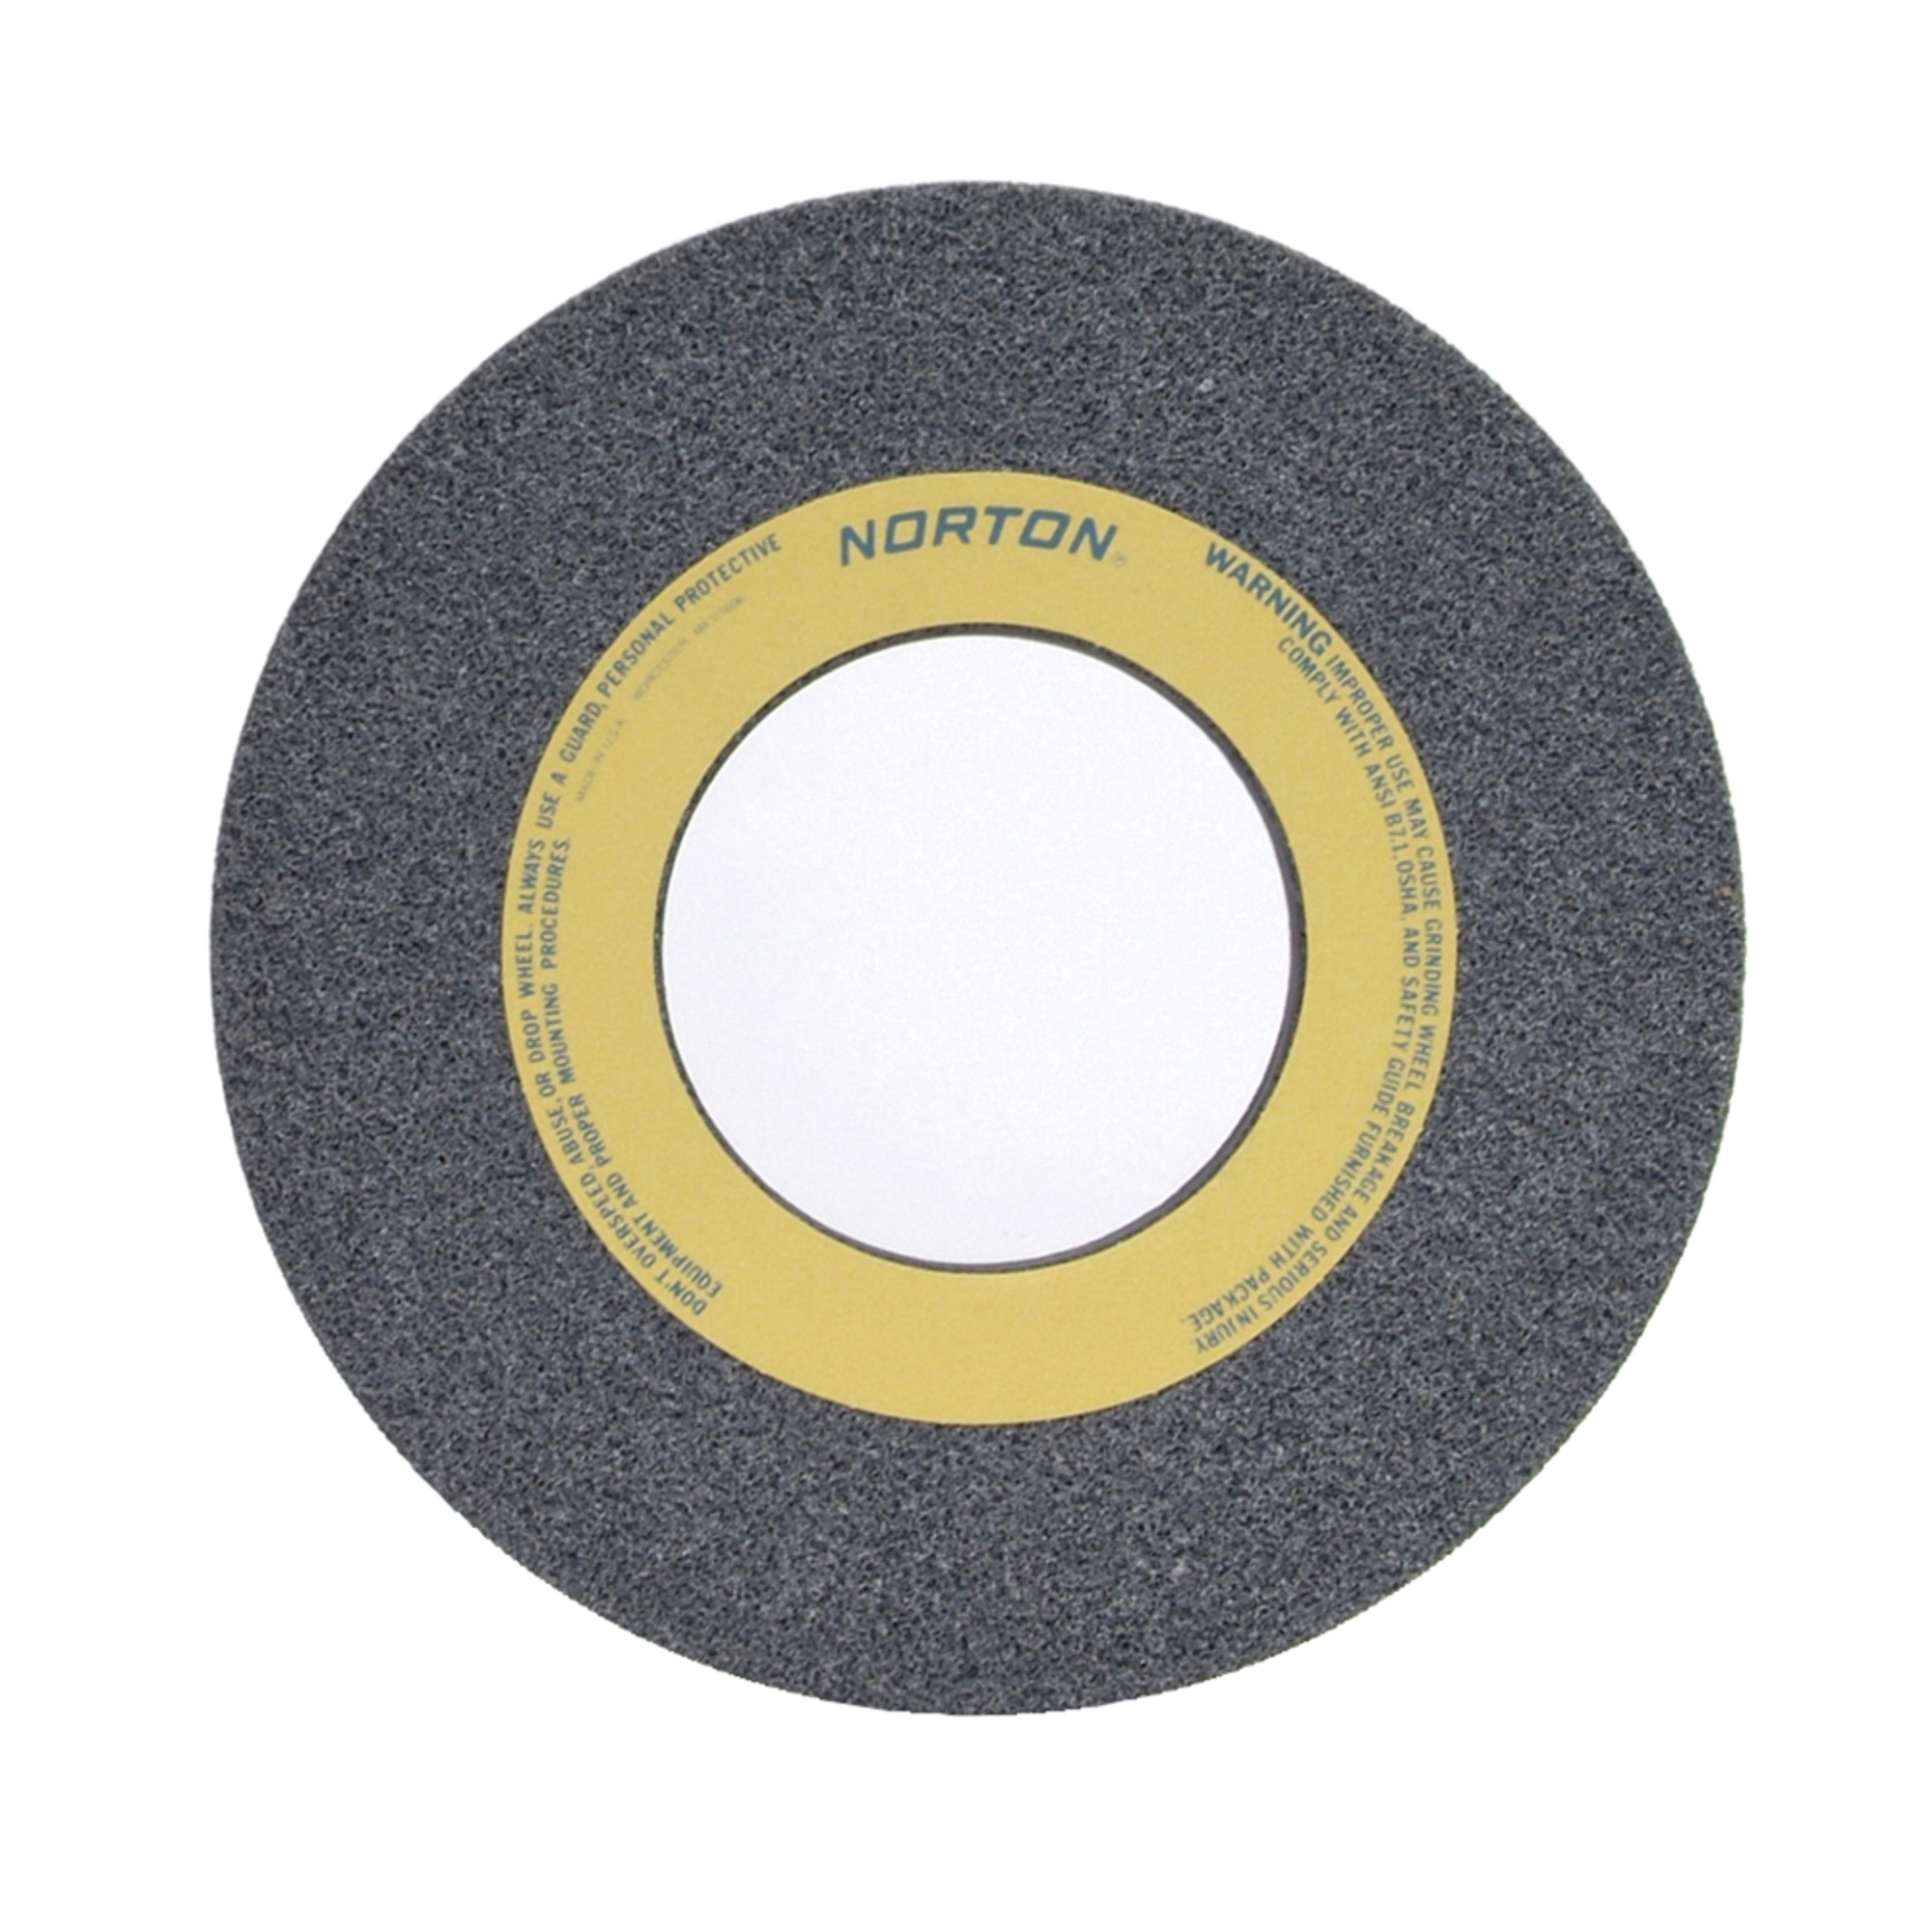 Norton® 66253263192 32A Straight Toolroom Wheel, 12 in Dia x 1-1/2 in THK, 5 in Center Hole, 46 Grit, Aluminum Oxide Abrasive